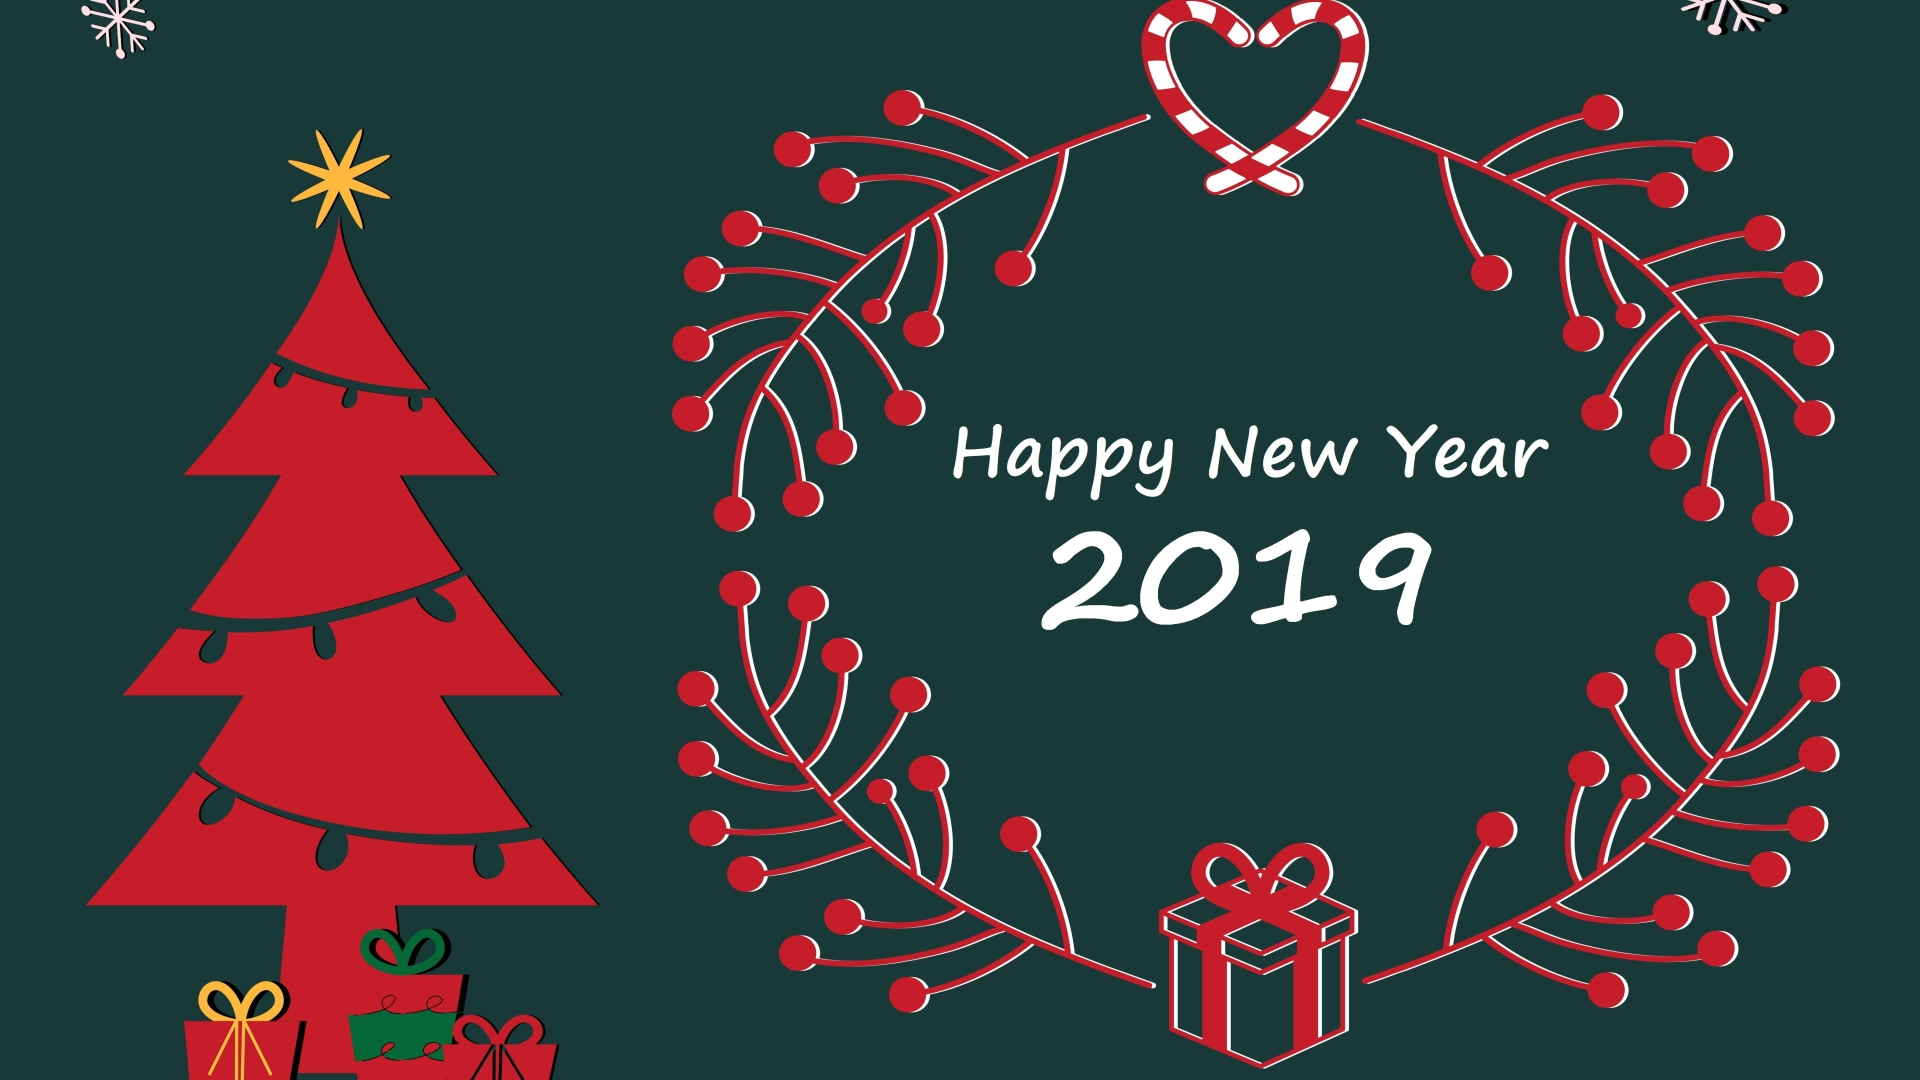 1920x1080 Happy New Year And Merry Christmas 2019 1080p